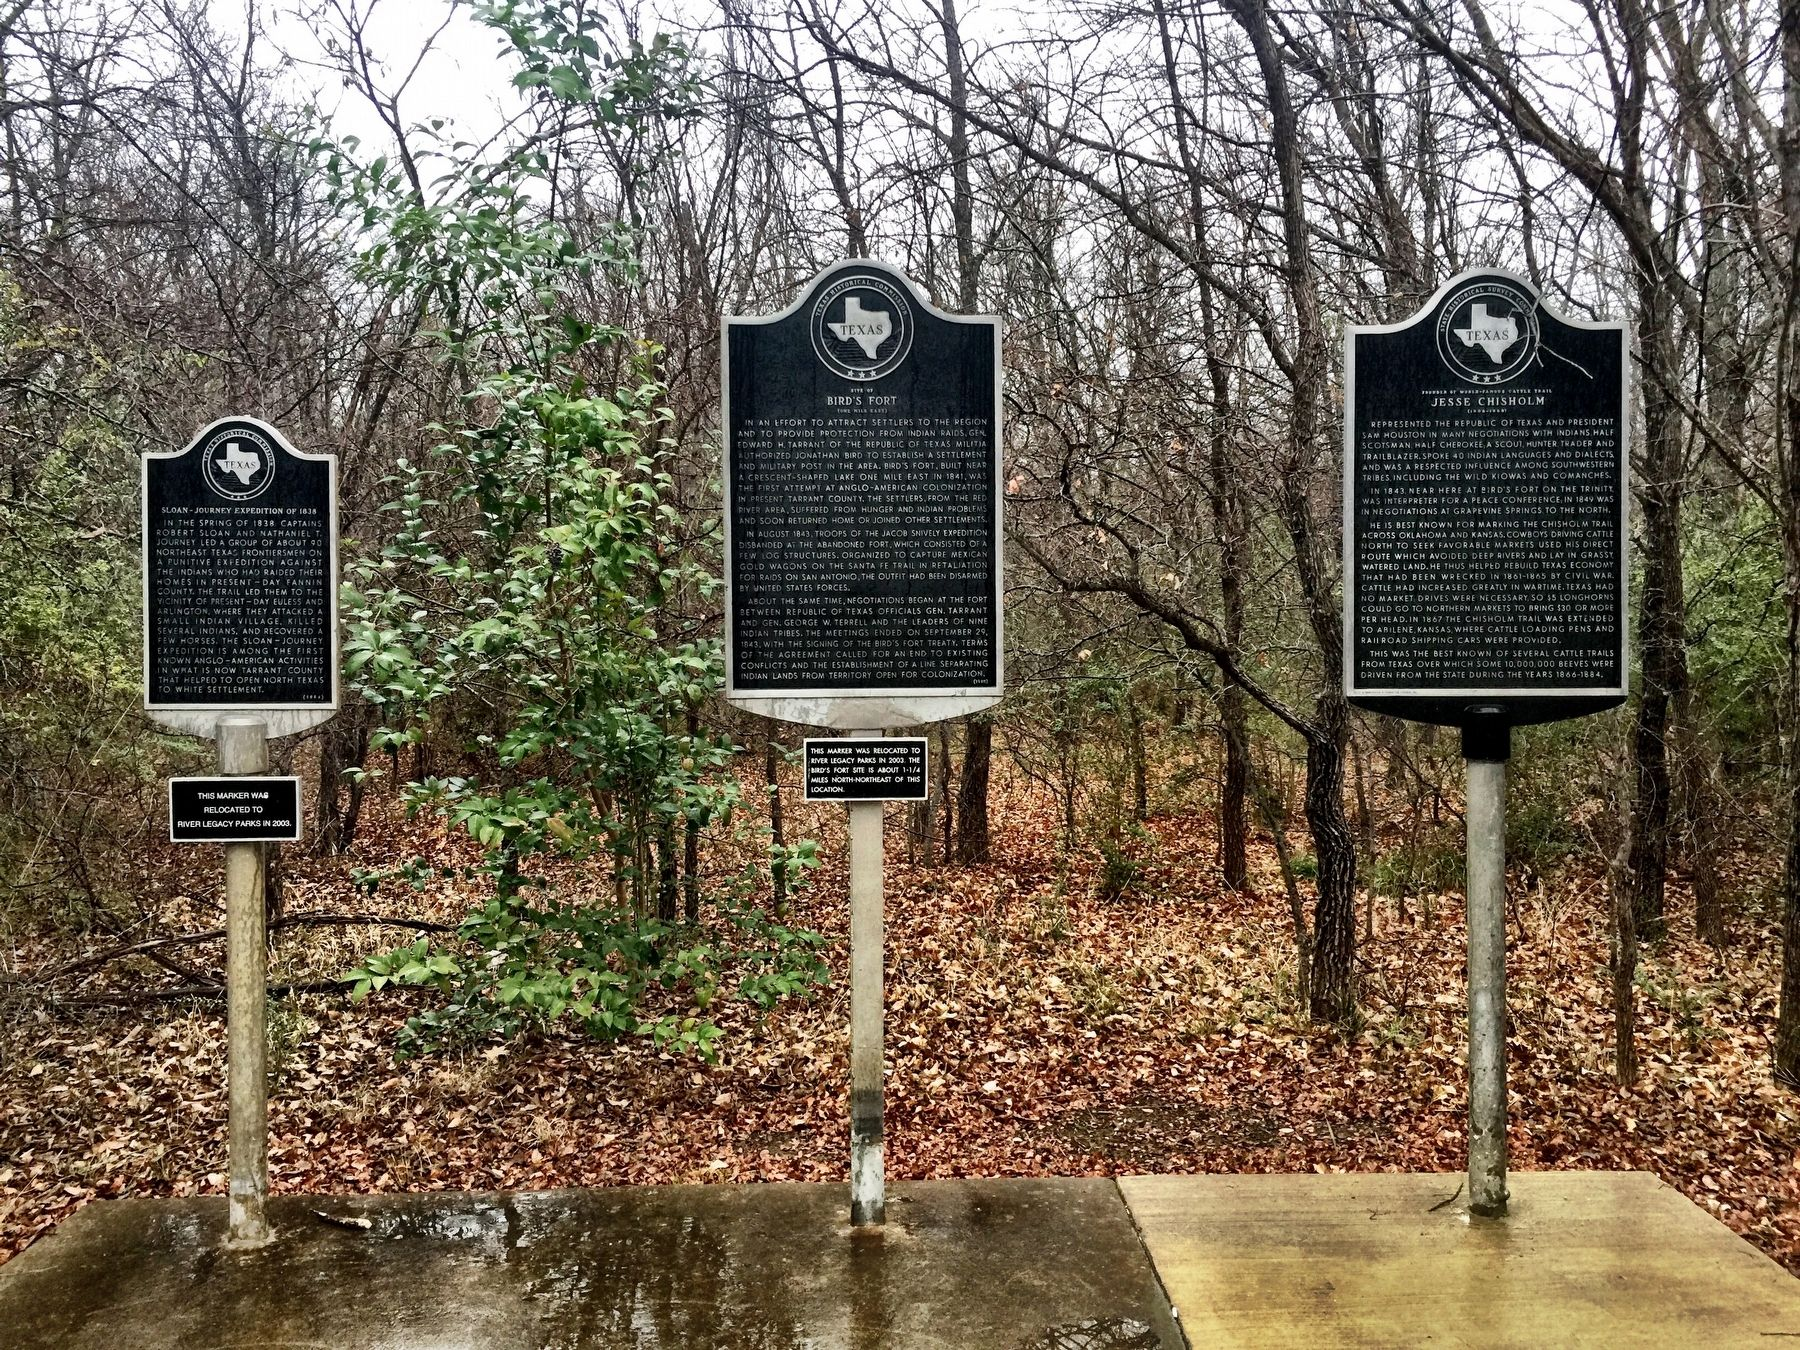 Jesse Chisholm Marker, right, with the two other markers in this park image. Click for full size.